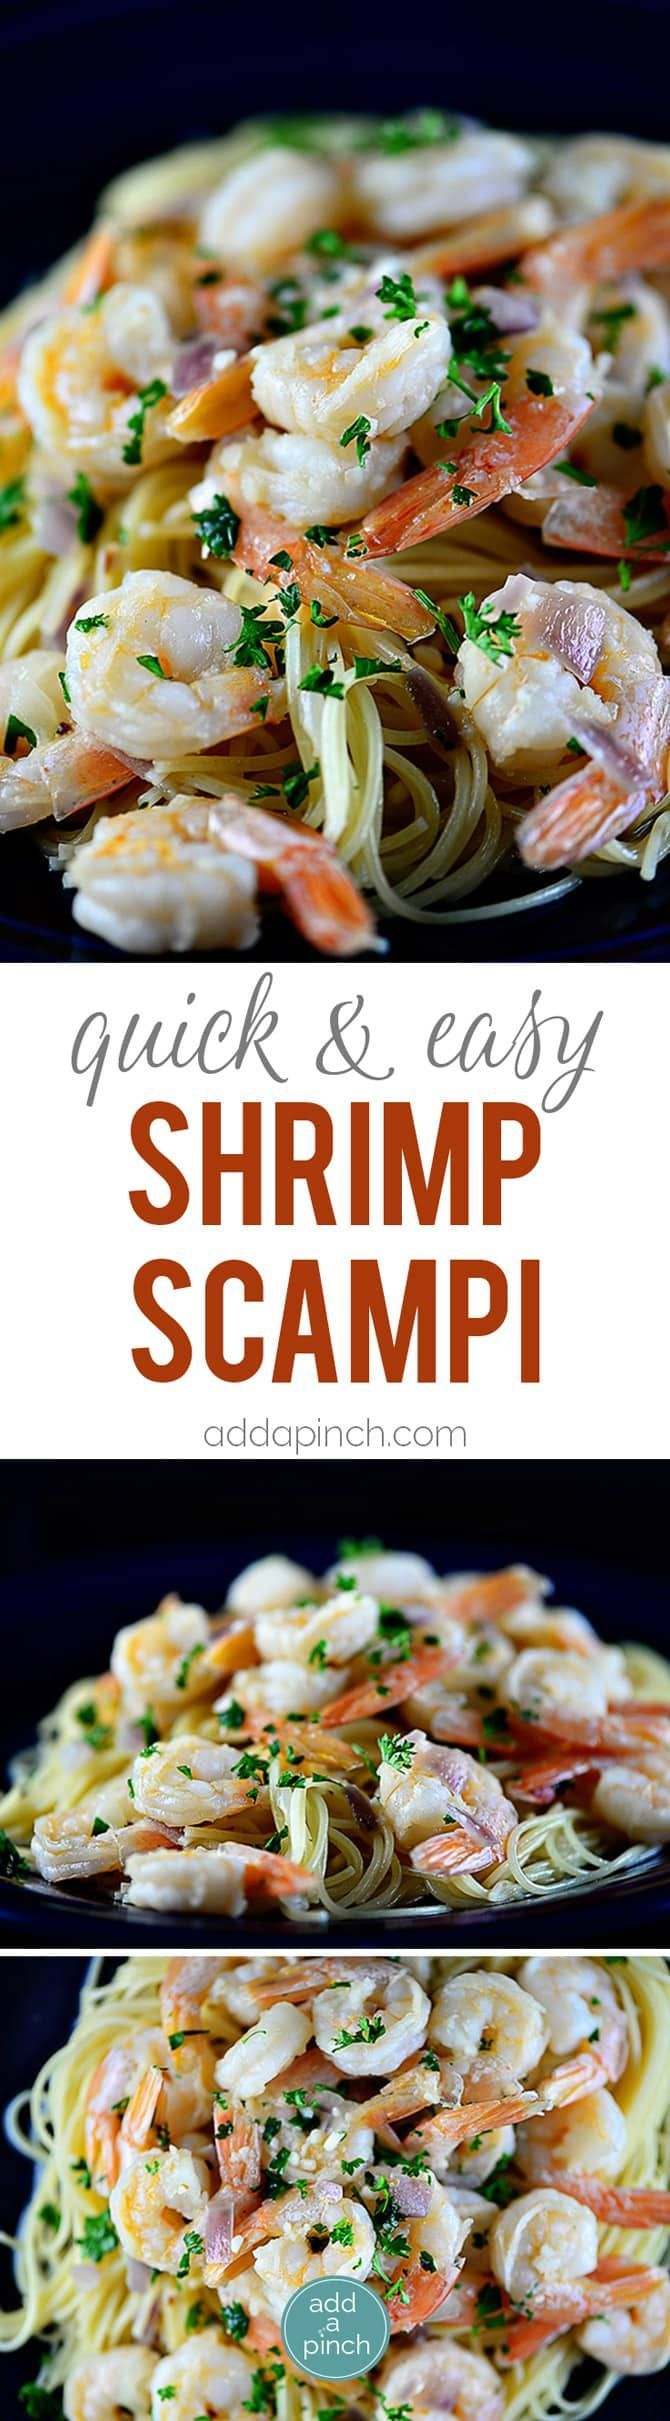 Shrimp scampi is easy and elegant, perfect for entertaining. Made of shrimp sautéed in butter and olive oil, garlic, and gently tossed with red onion and parsley, it is a classic. // addapinch.com (garlic noodles recipe shrimp)